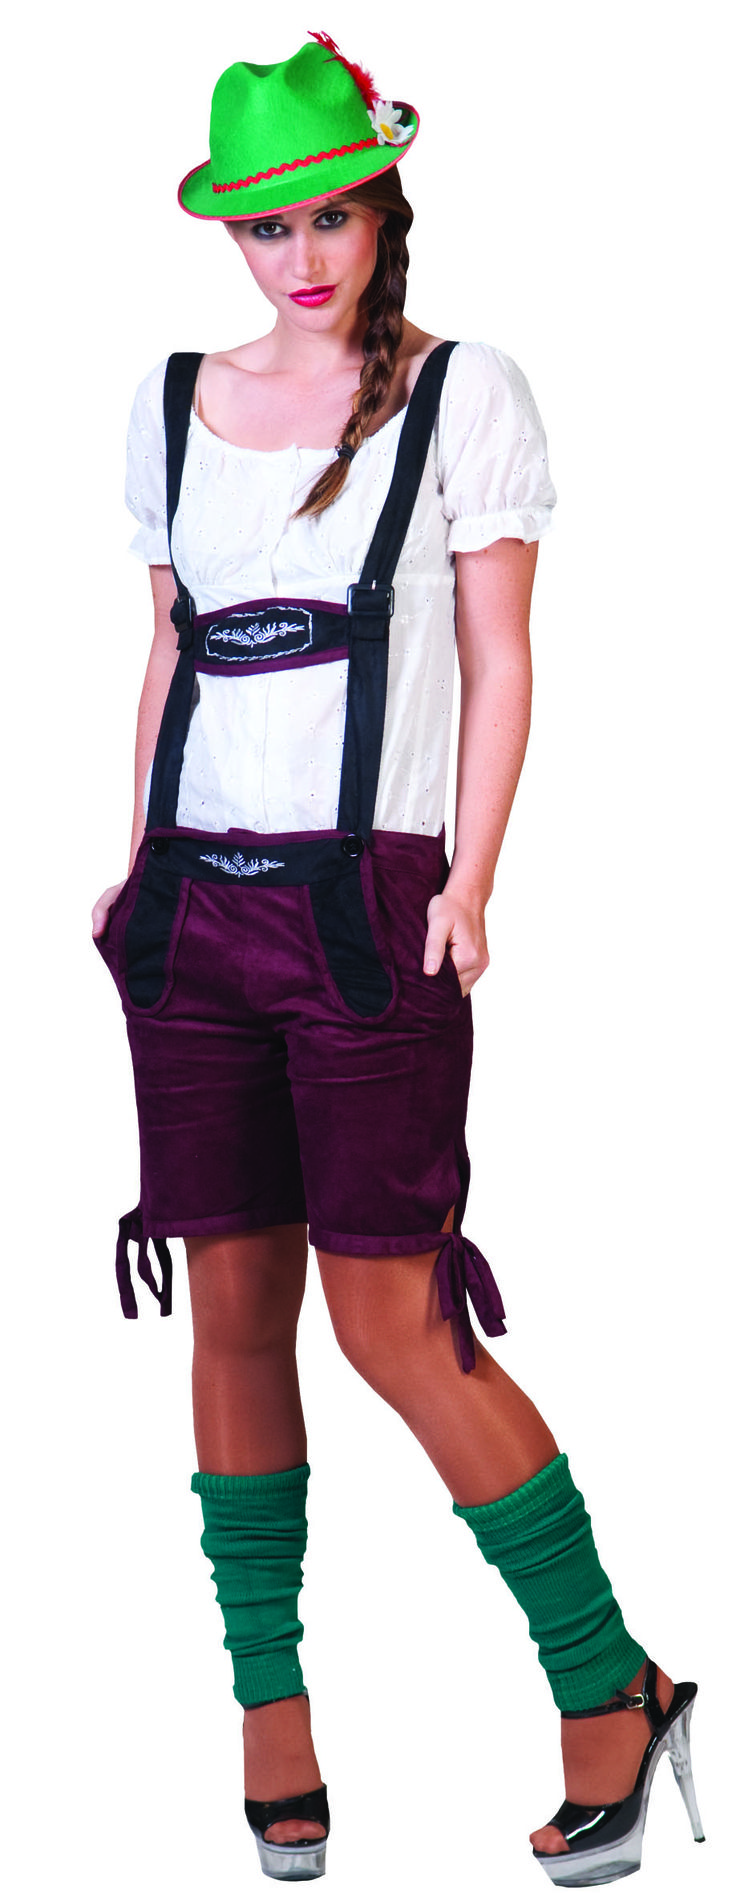 Munich Michaela Ladies Lederhosen - Wear this for Halloween, an Oktoberfest celebration or other costume parties and festivities. Check out the matching Men's Oktoberfest Lederhosen costume. This is a Munich Michaela traditional Bavarian Lederhosen outfit.  This two-piece Bavarian Oktoberfest costume has a blouse and cute lederhosen shorts with suspenders. The blouse is light embroidered fabric with a wide, elasticized scoop neck. #costumes #yyc #calgary #oktoberfest #lederhosen